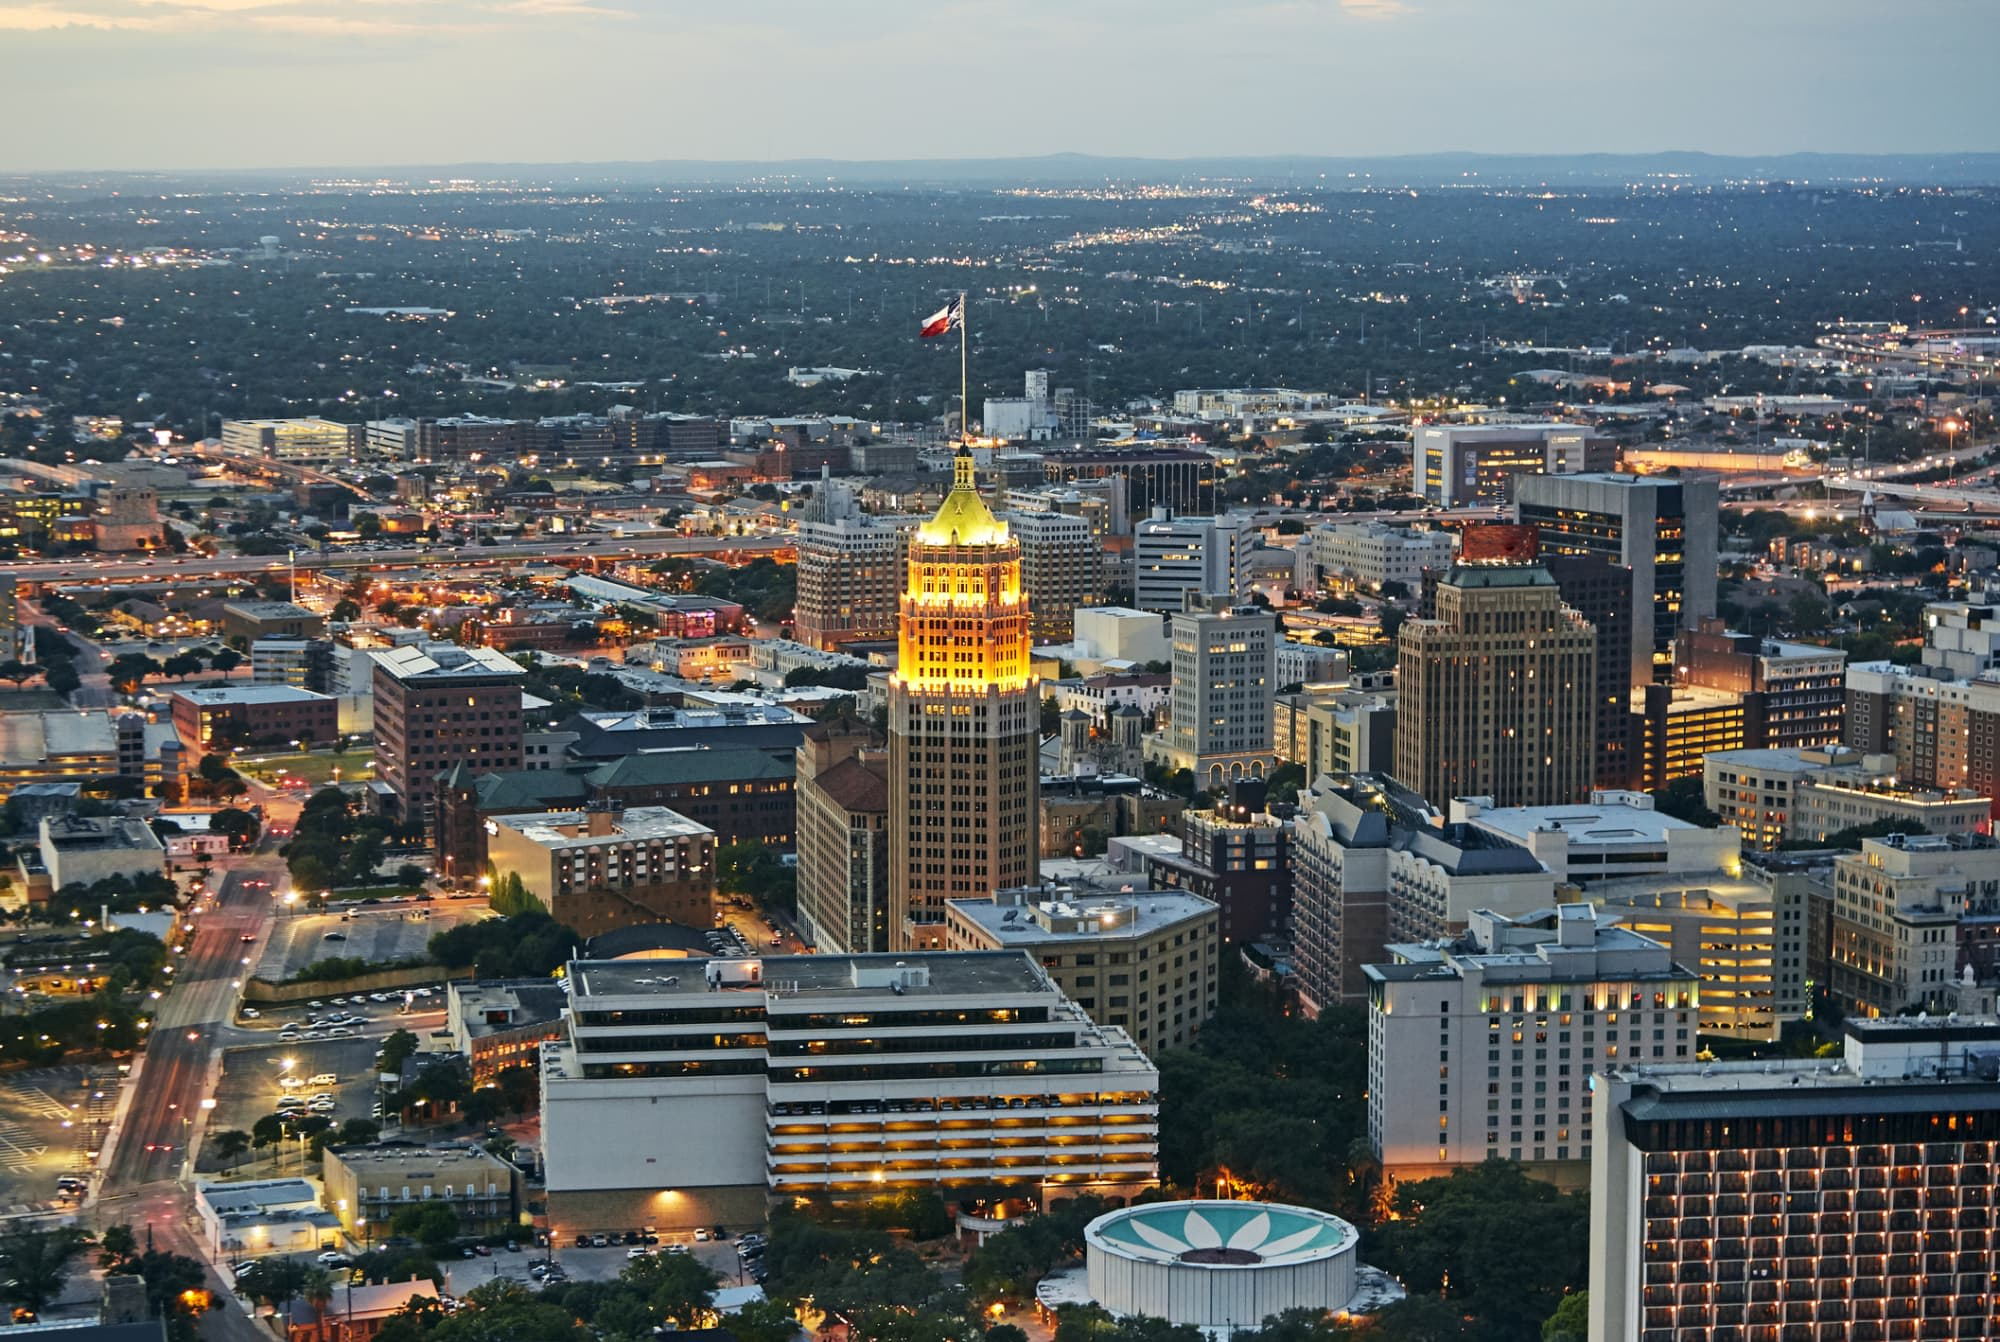 Top 10 Places for LVN Jobs in San Antonio